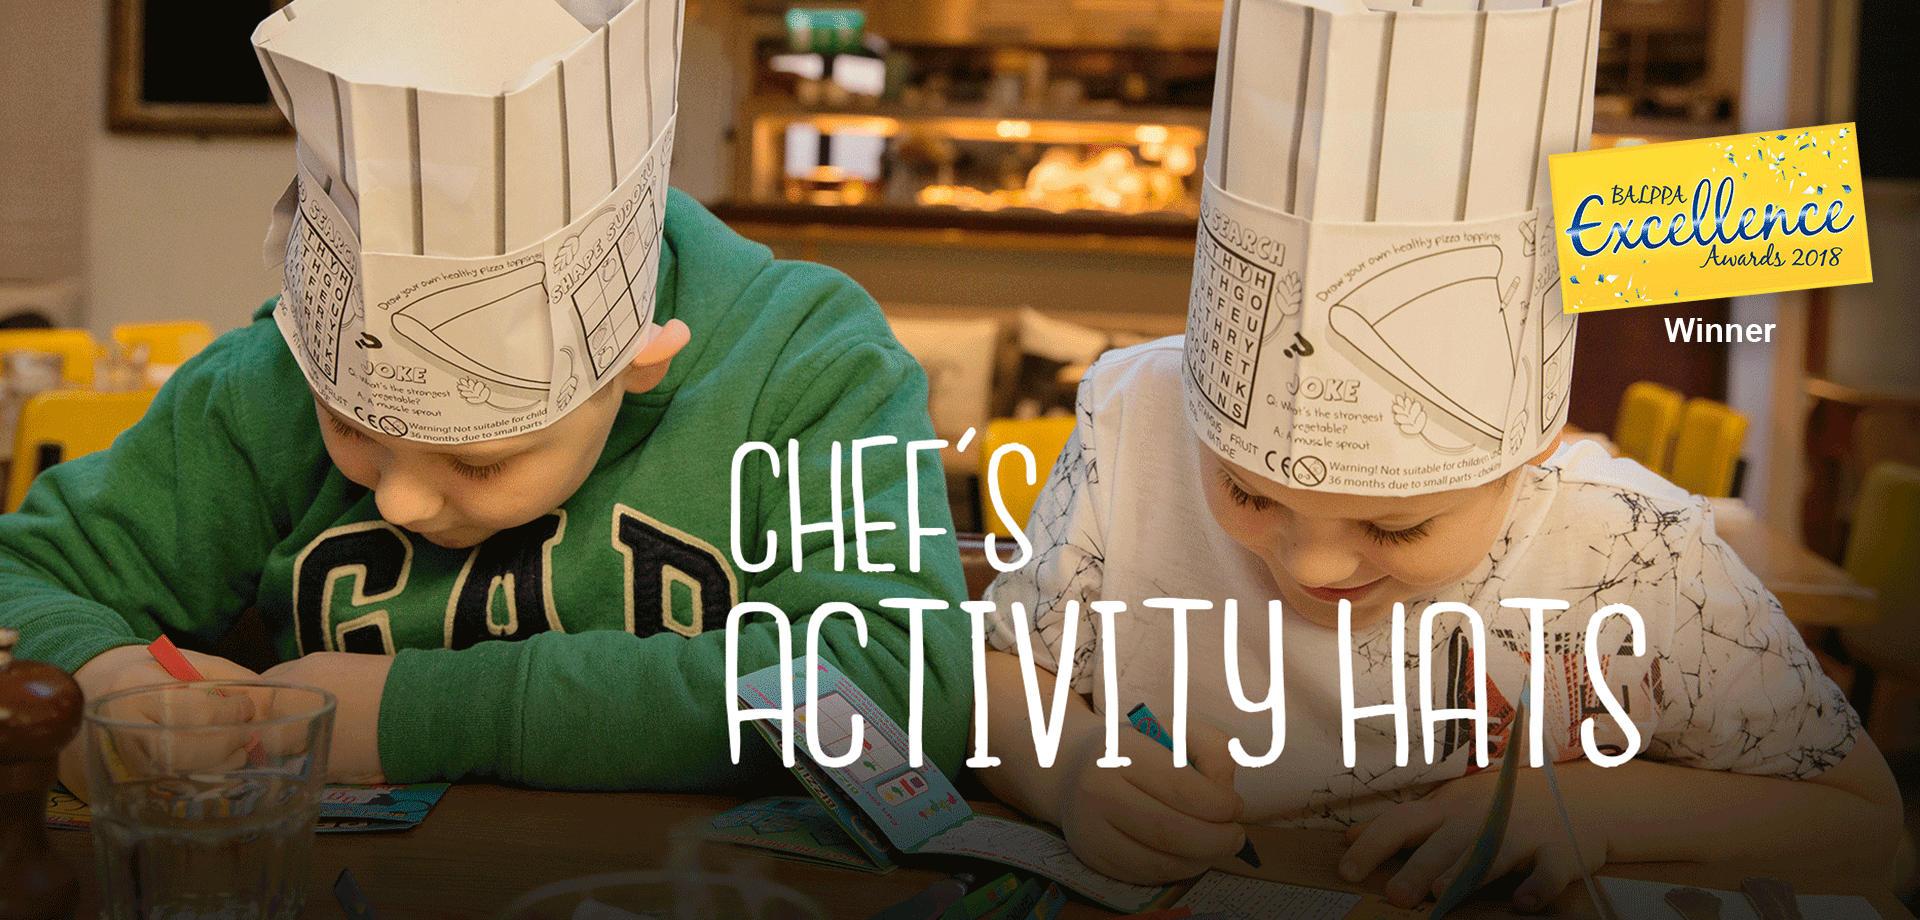 Chef's colouring in activity hats for restaurants